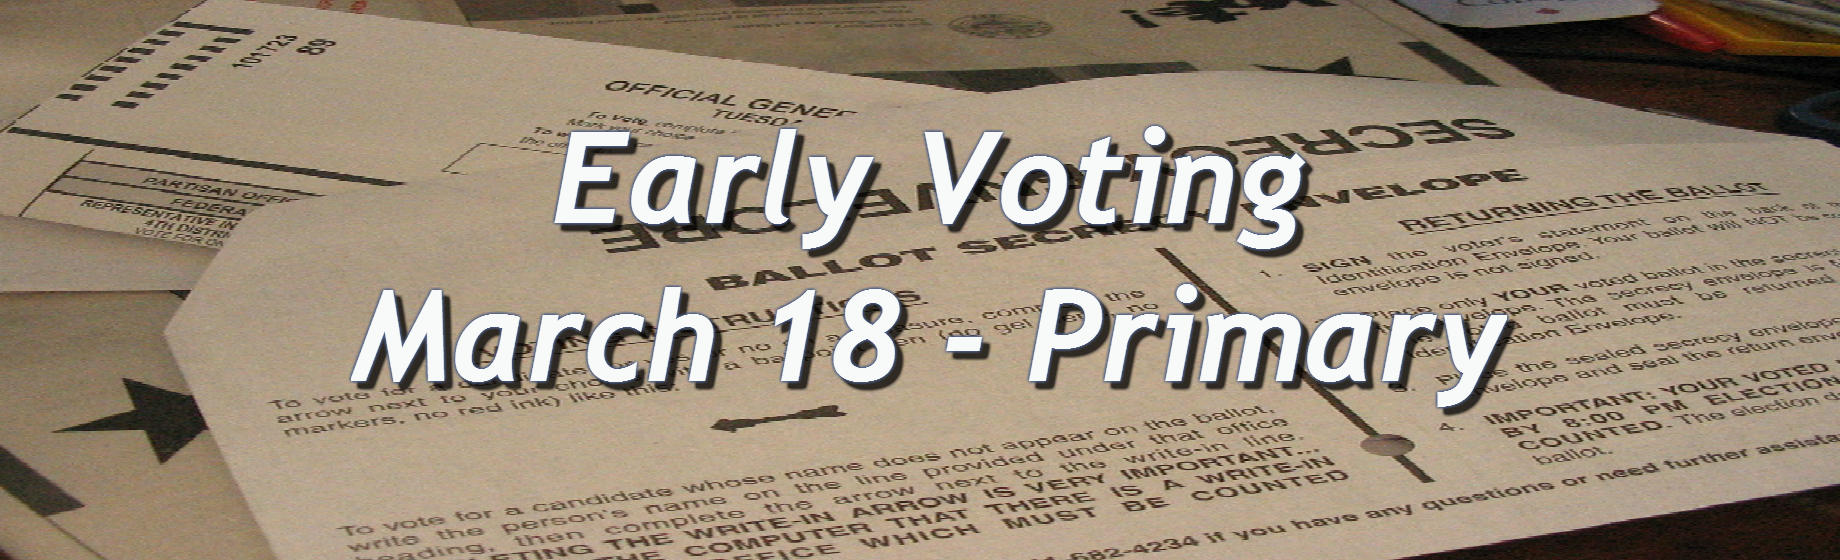 early voting envelope